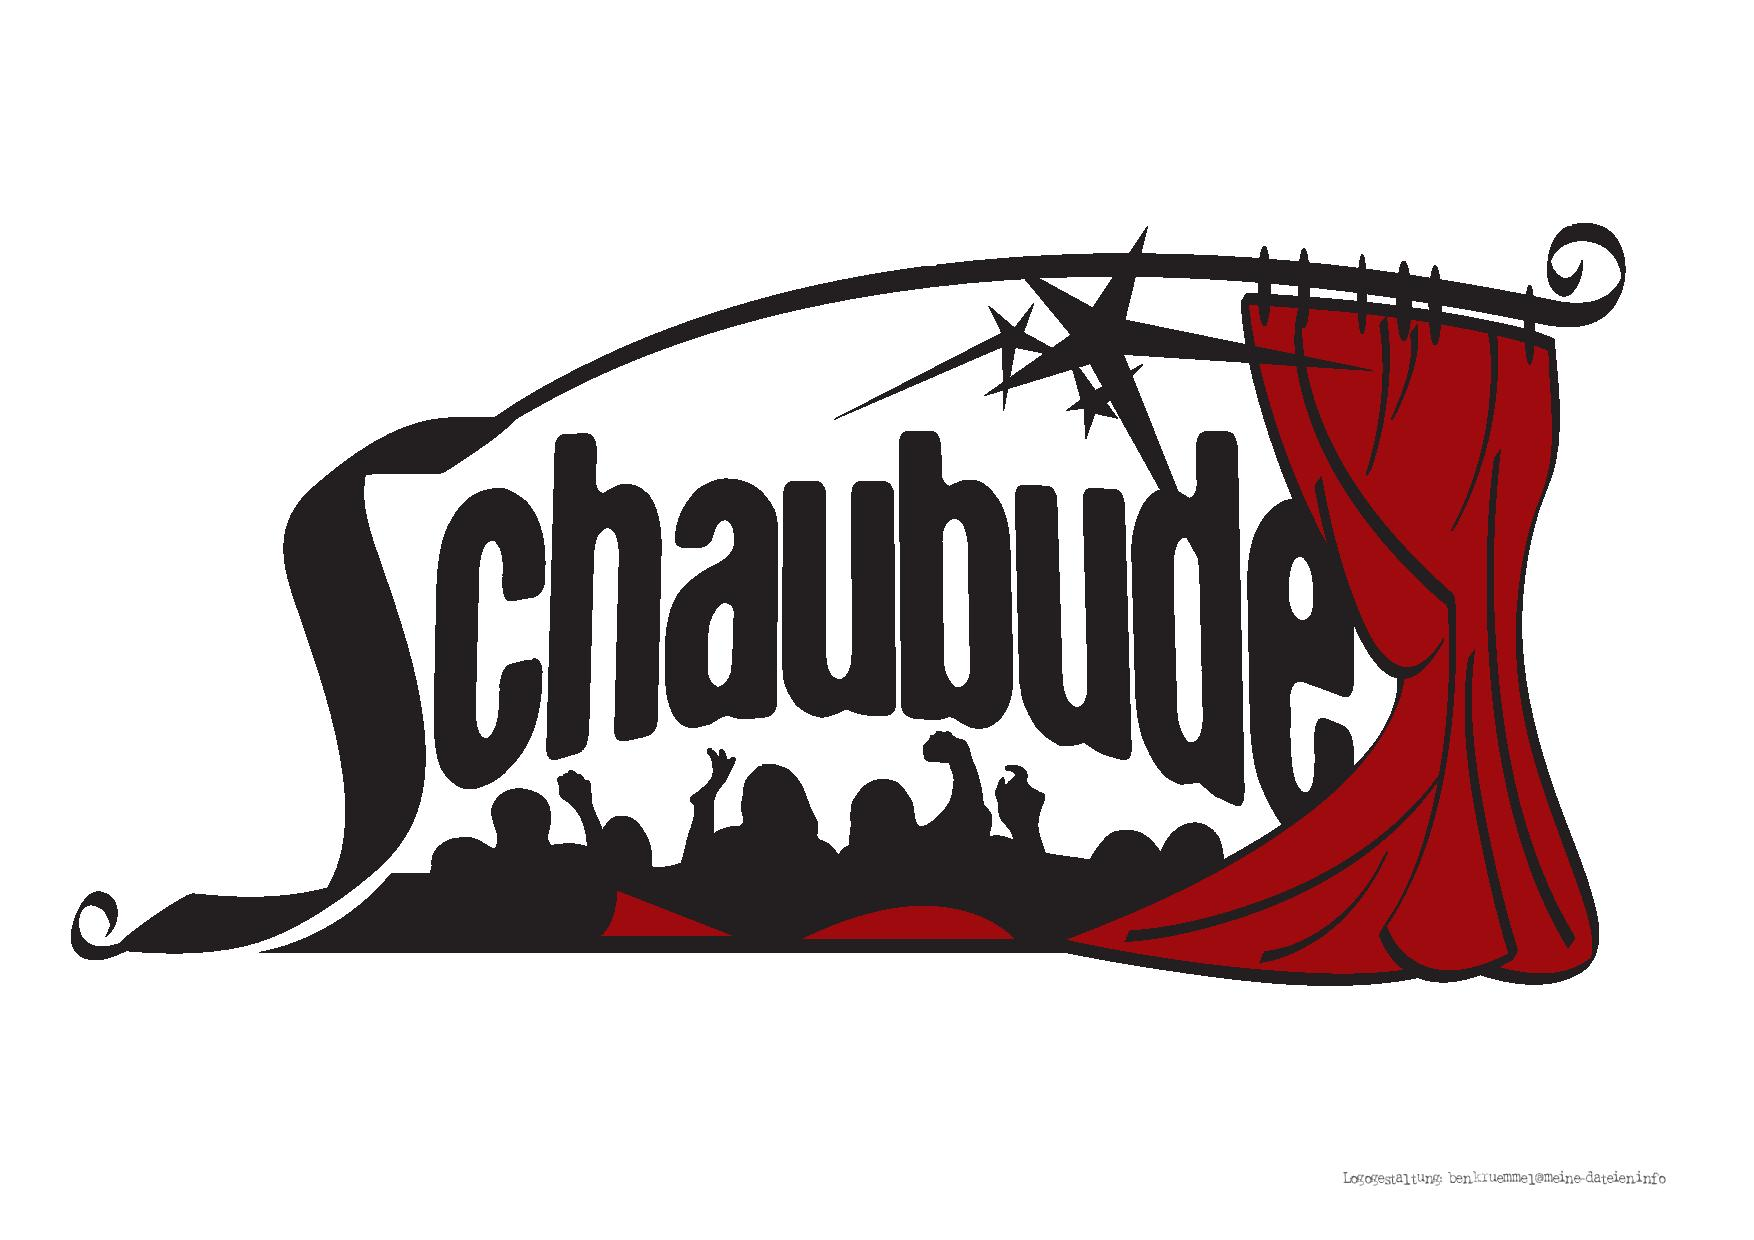 Image of Schaubude